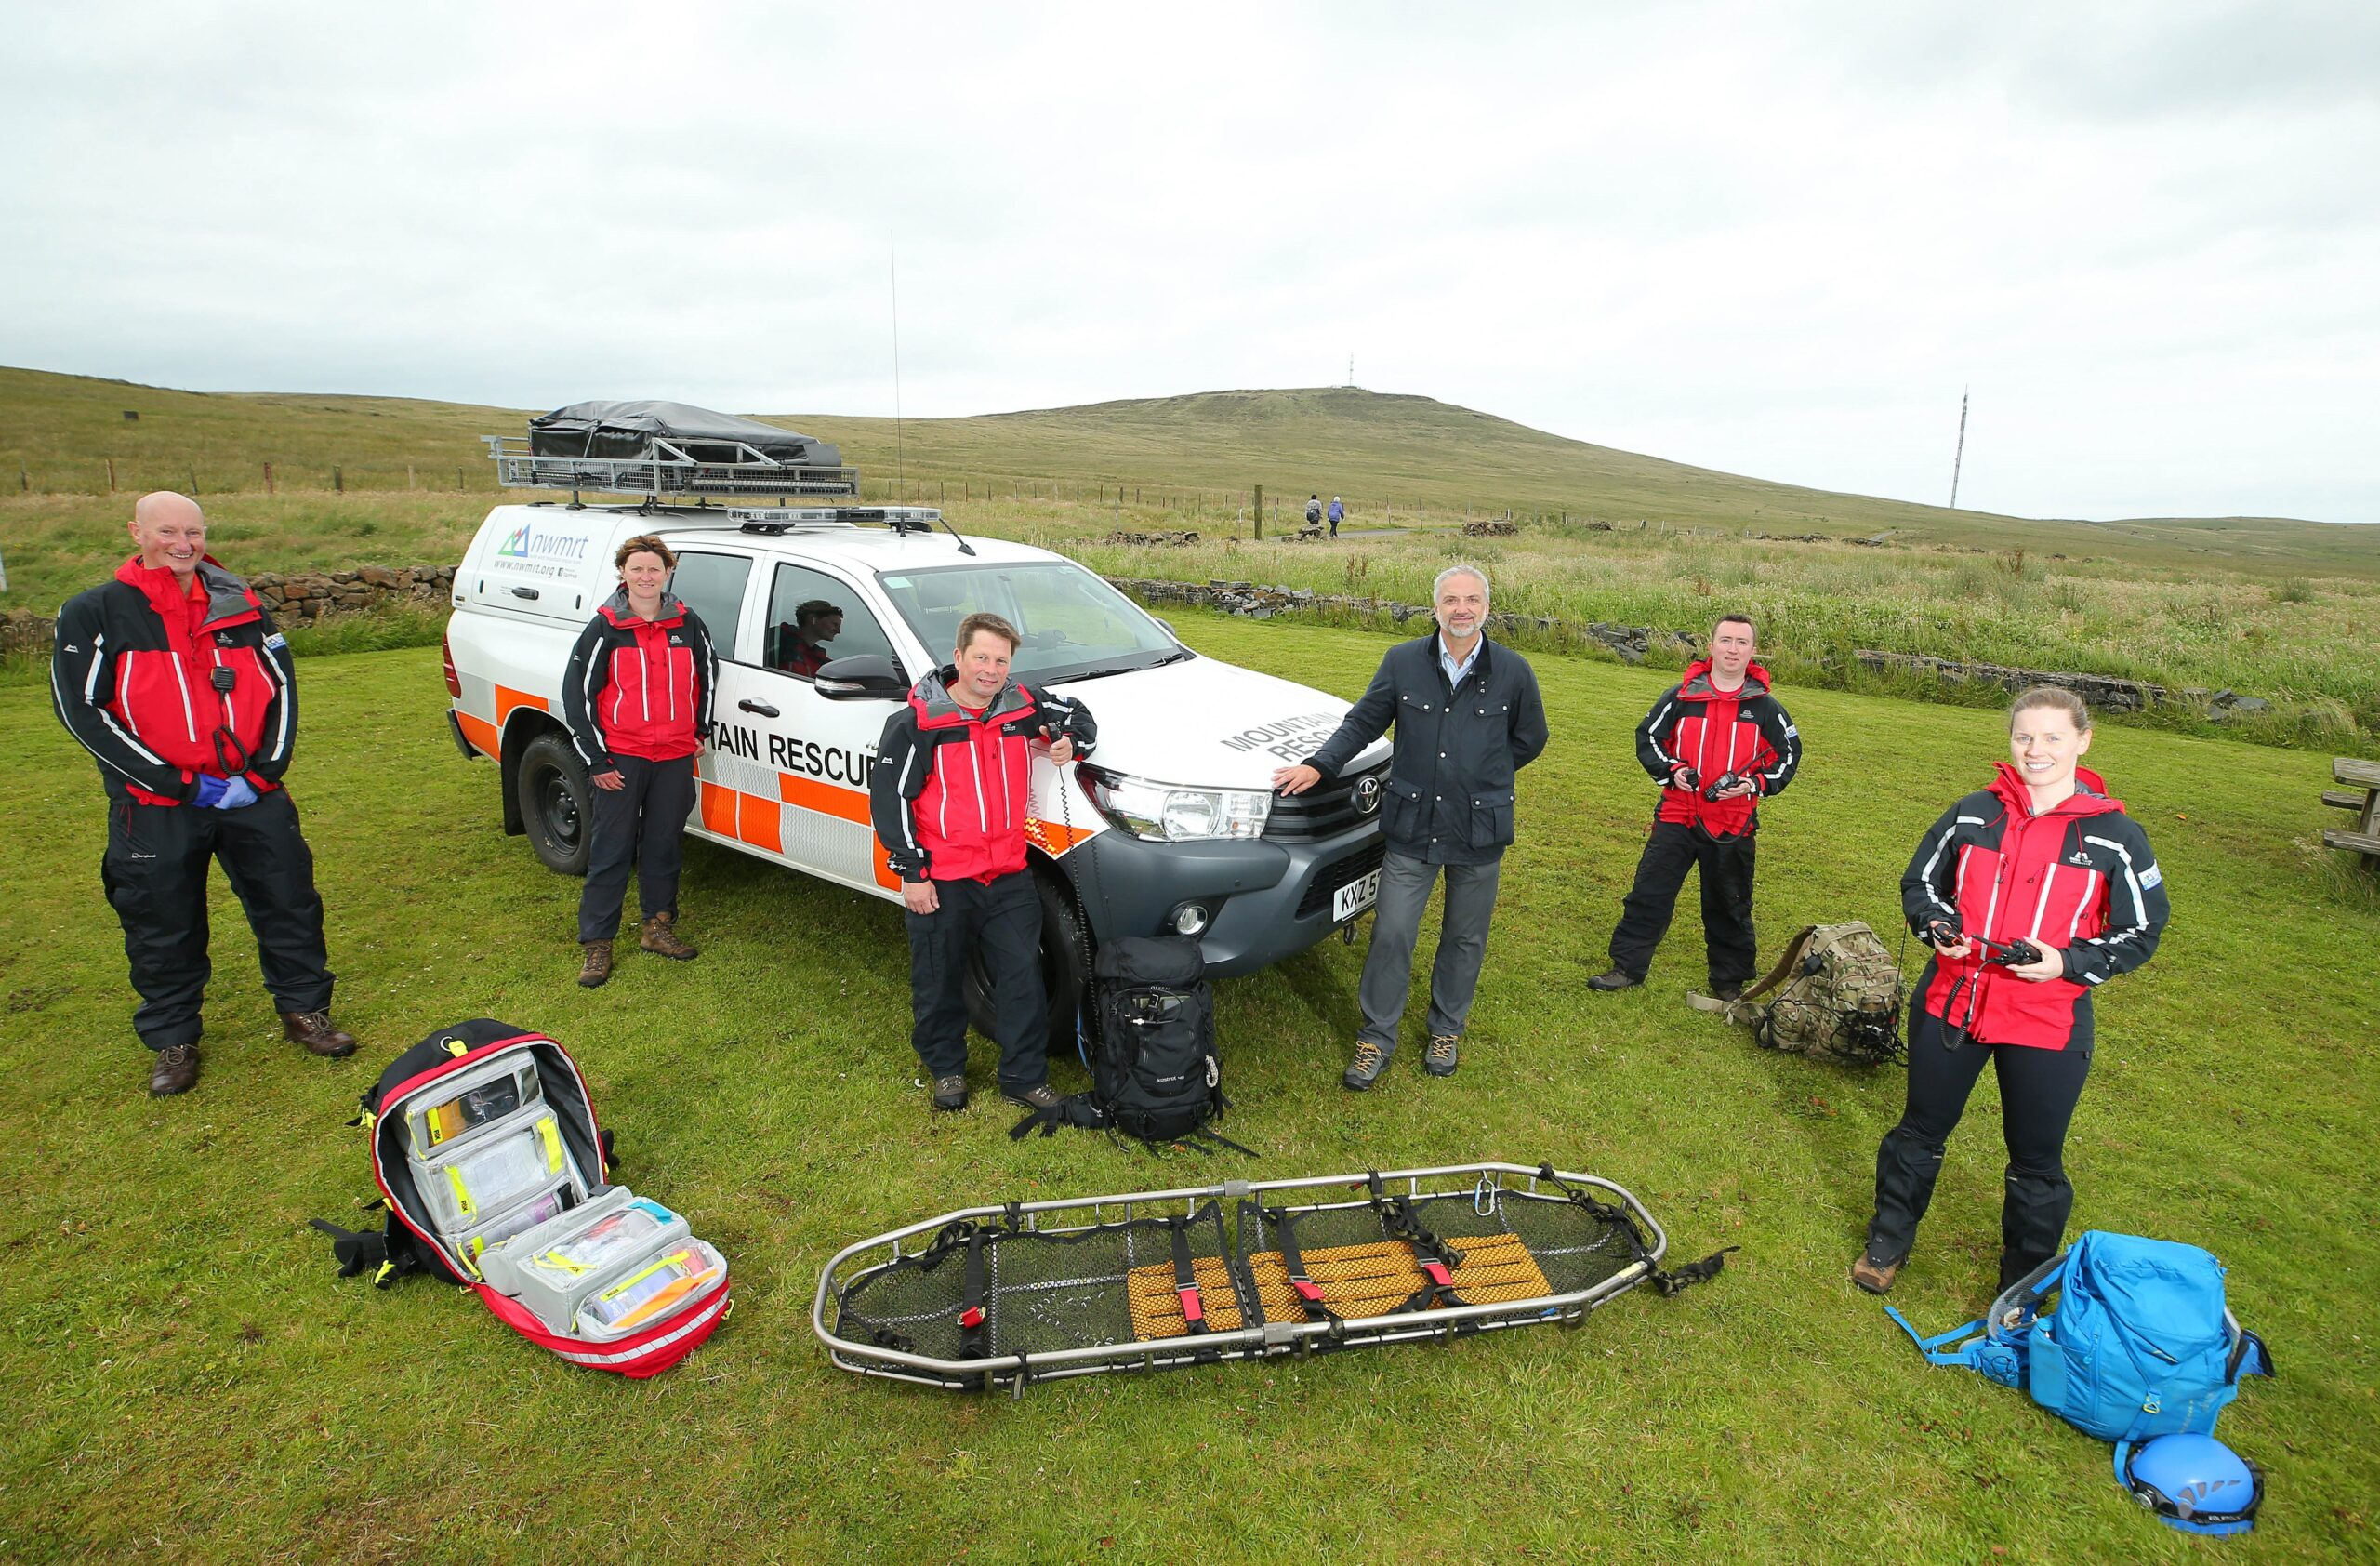 Voluntary Search and Rescue groups in Northern Ireland - Newry news headlines